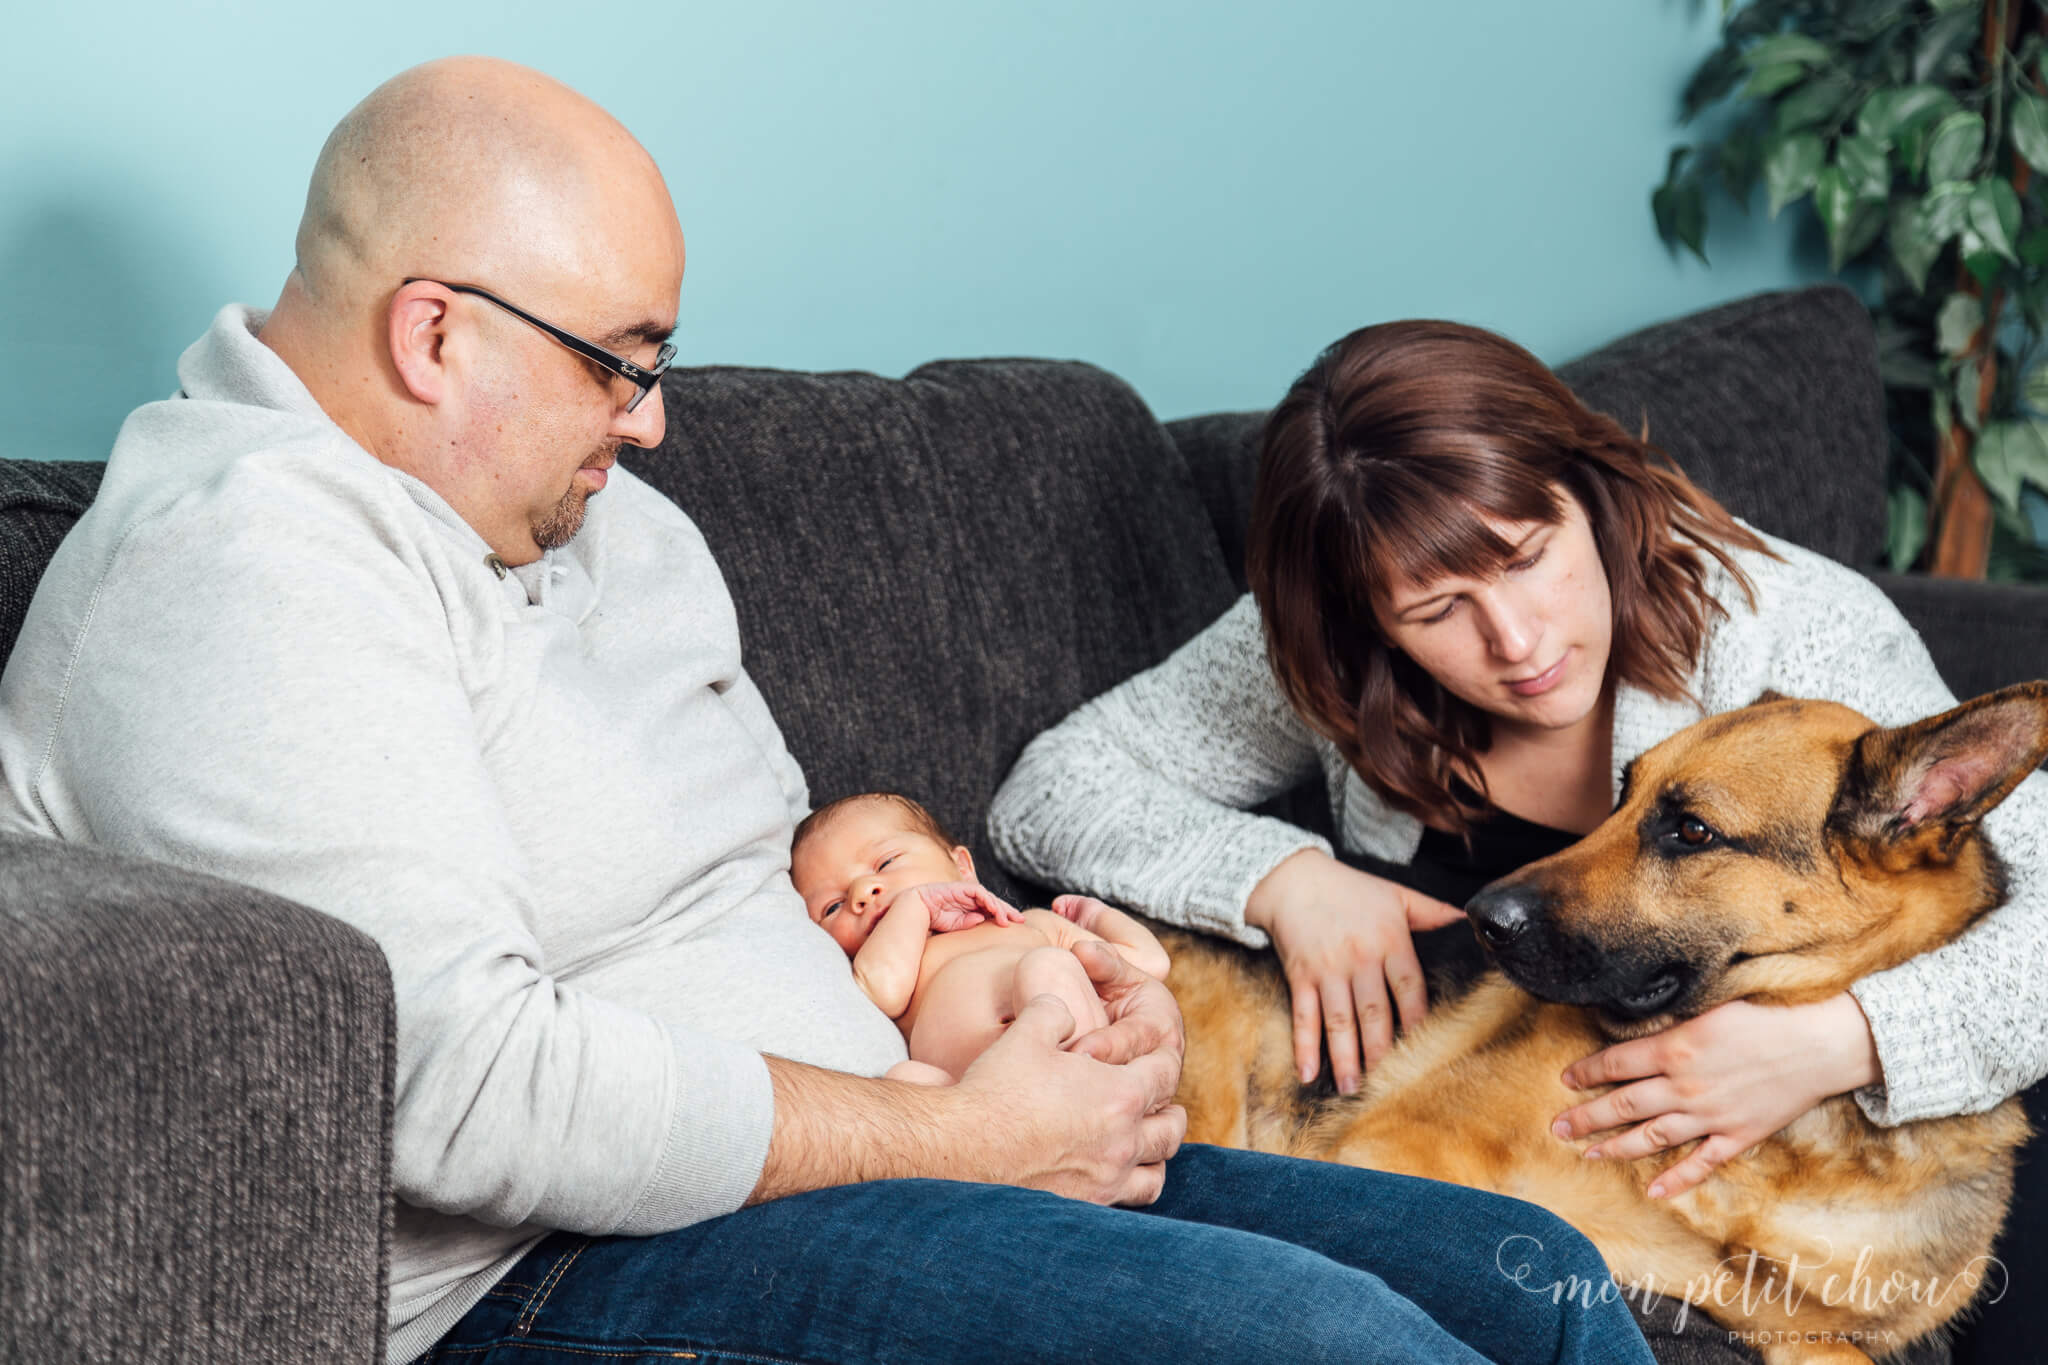 Family posed in candid moment holding baby and petting dog